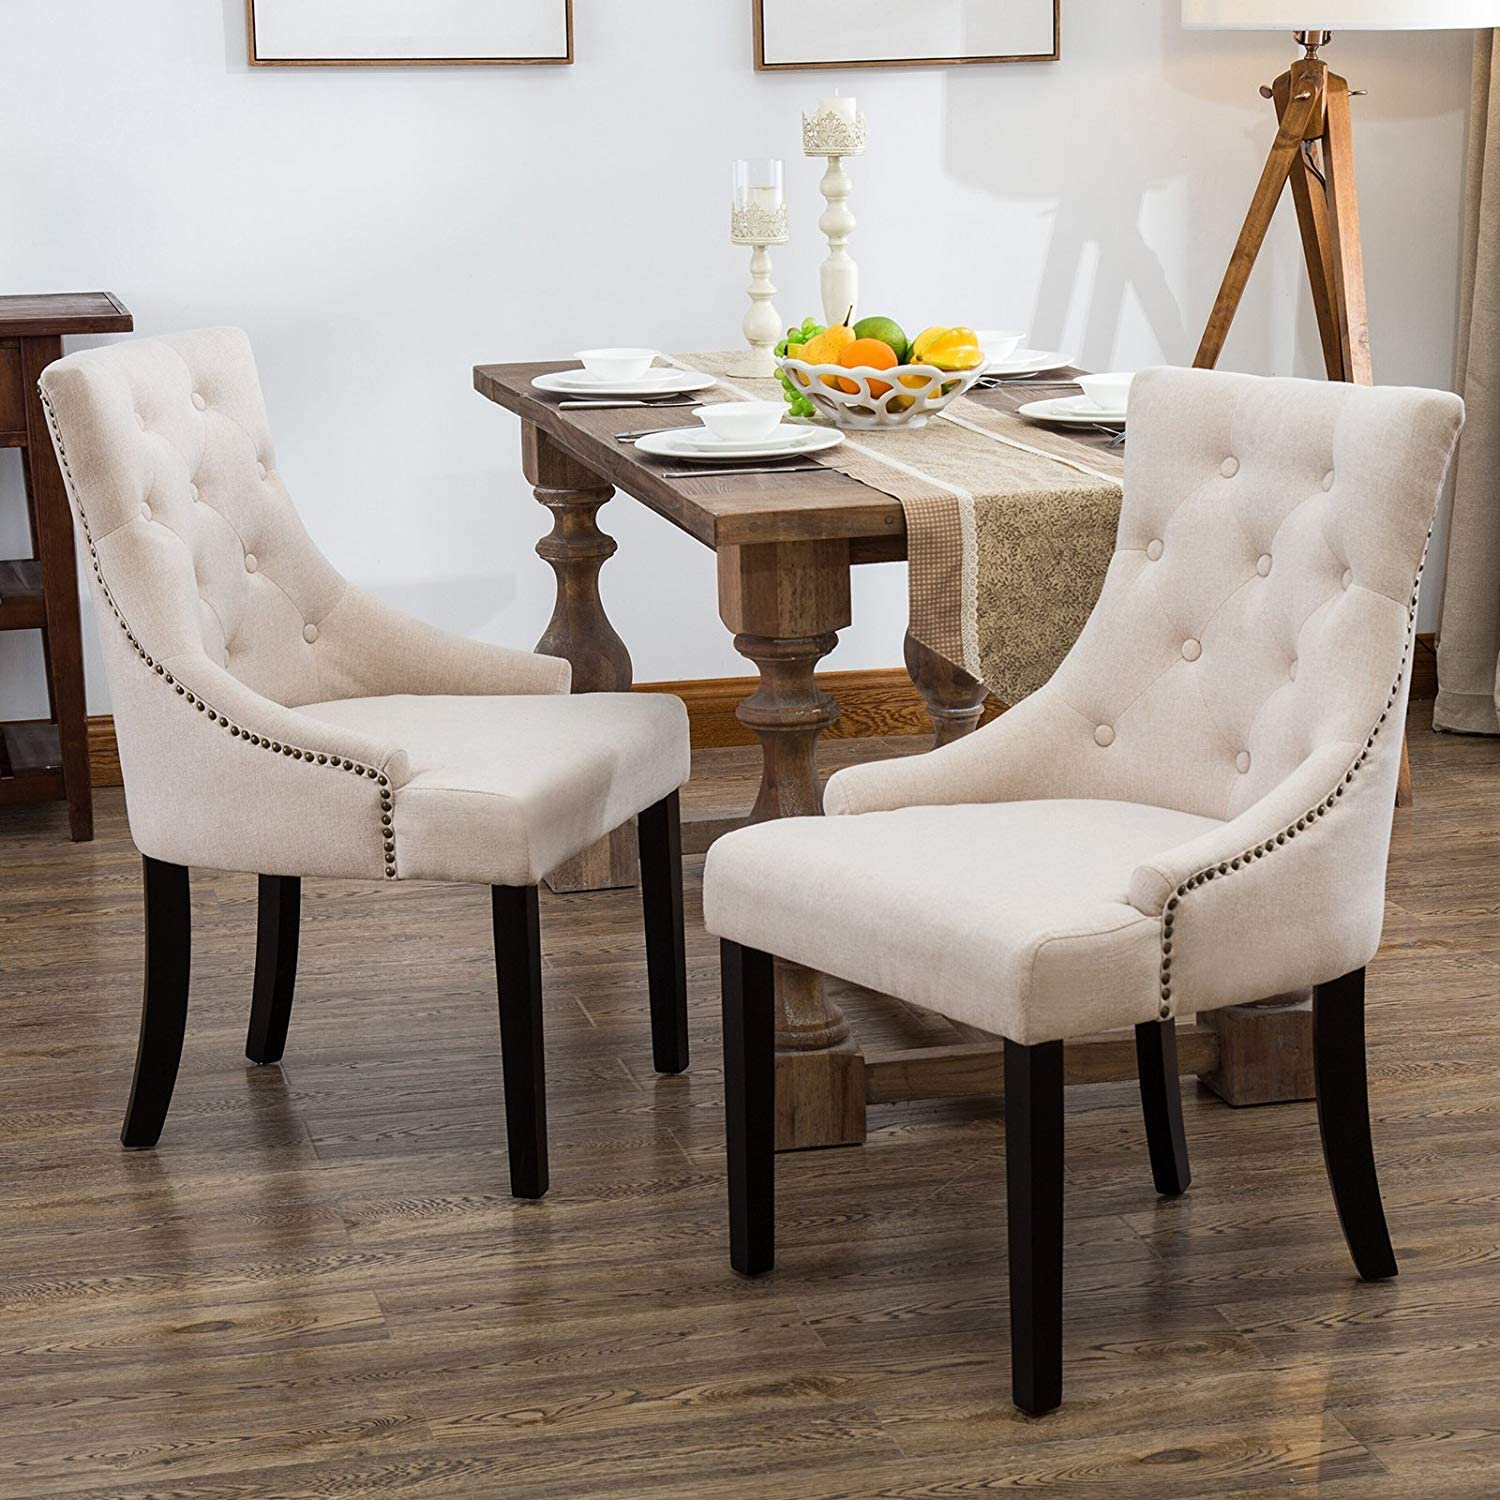 Mecor Fabric Dining Chairs Set of 2,Leisure Padded Chair with Armrest,Black Solid Wooden Legs Beige